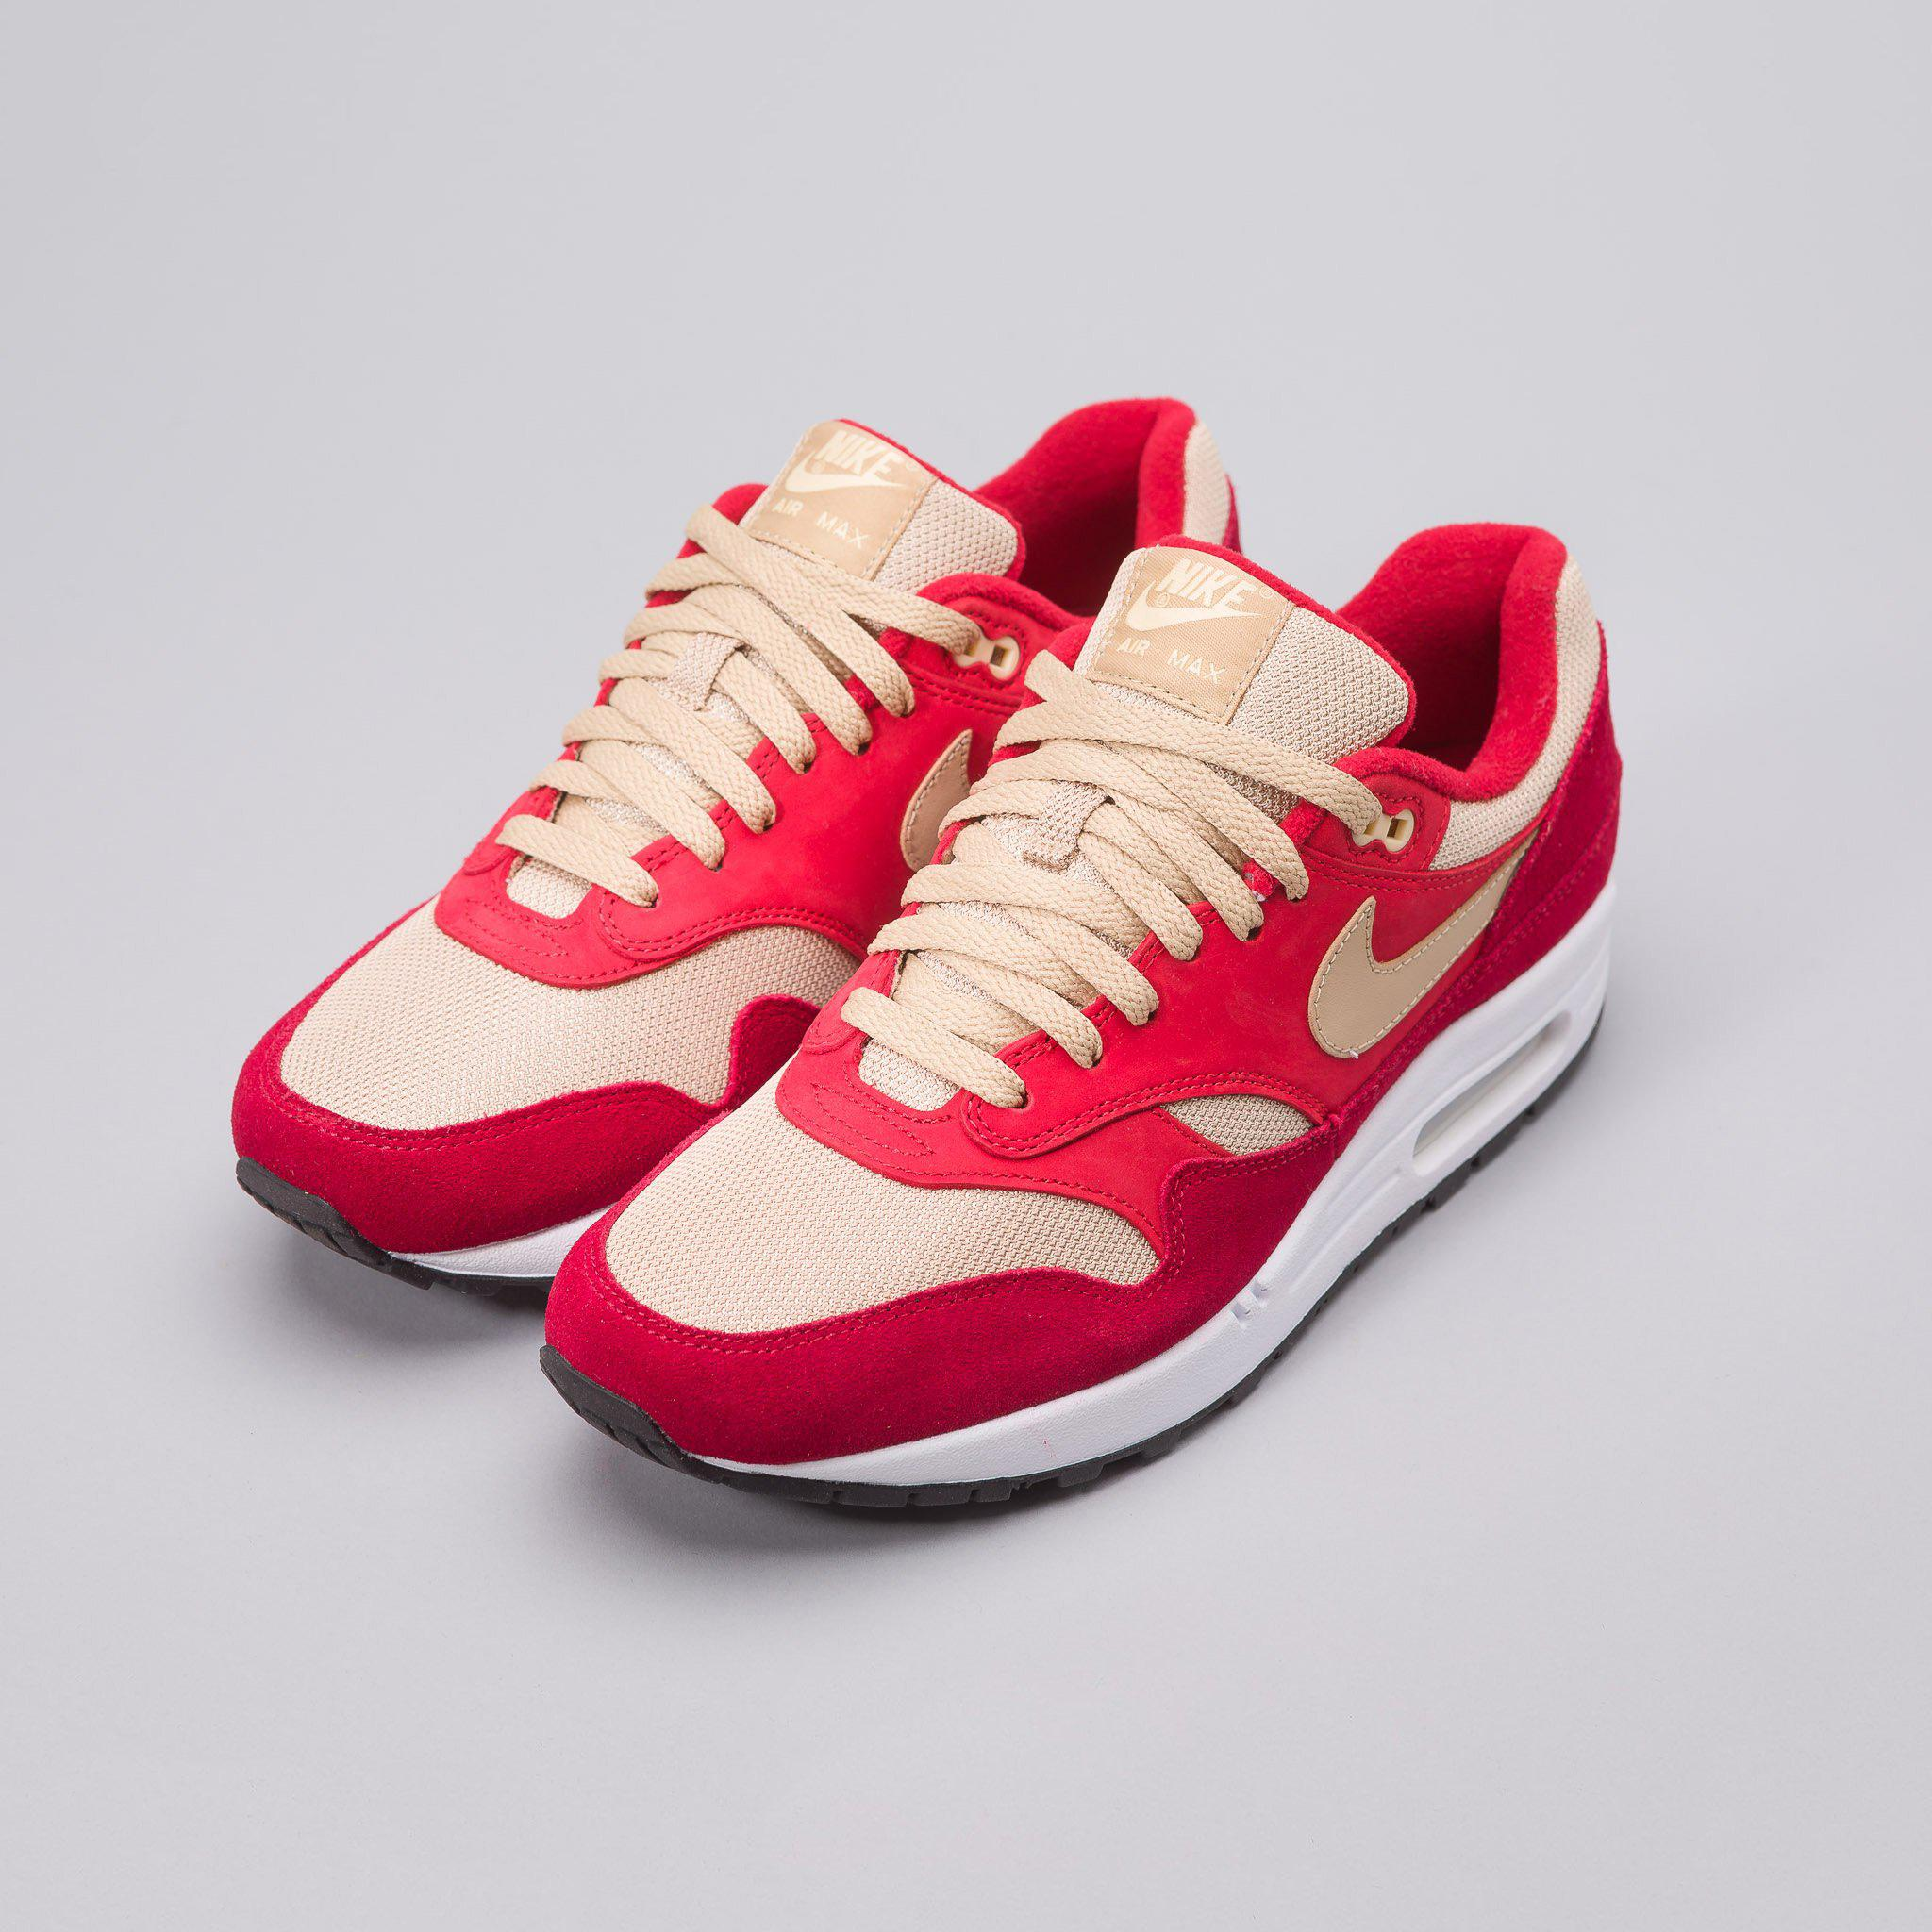 online store 5988b 269ed Lyst - Nike X Atmos Air Max 1 Premium Retro Red Curry in Red